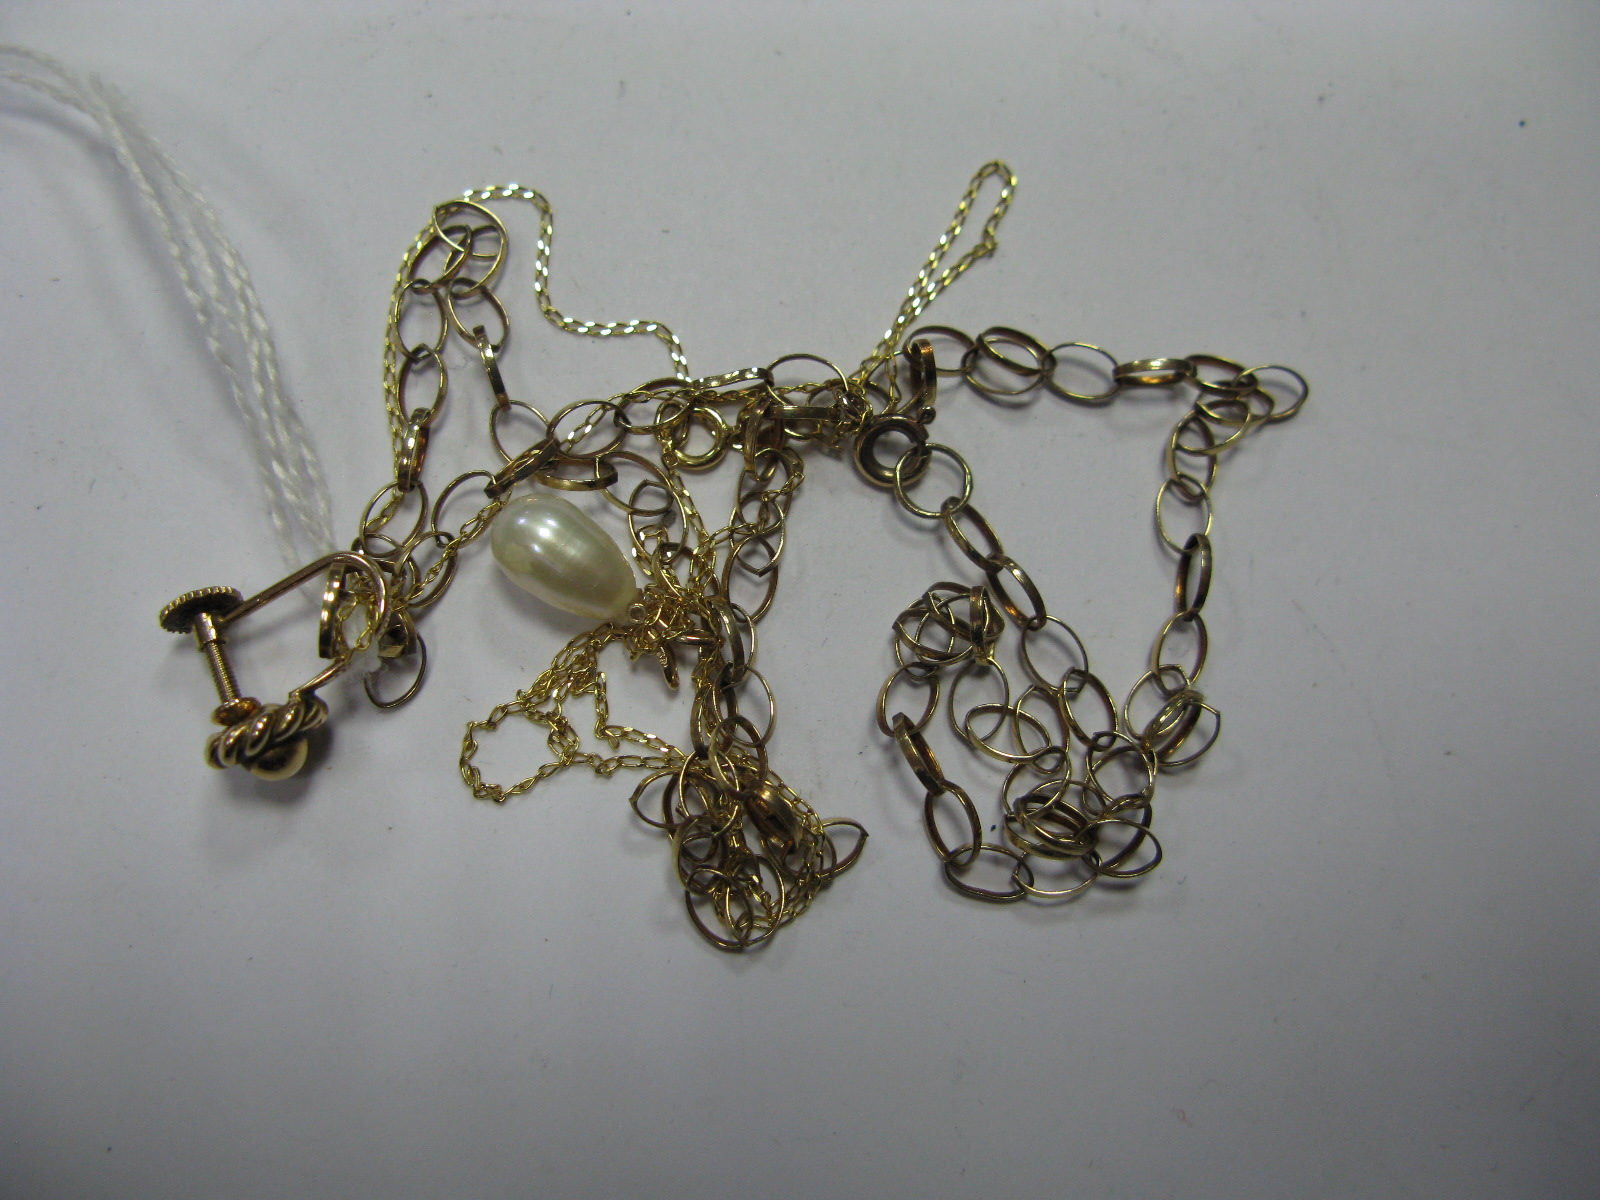 """Lot 1371 - A 9ct Gold Belcher Link Chain, flat link curb chain stamped """"375"""" with pearl pendant, etc. (3)"""